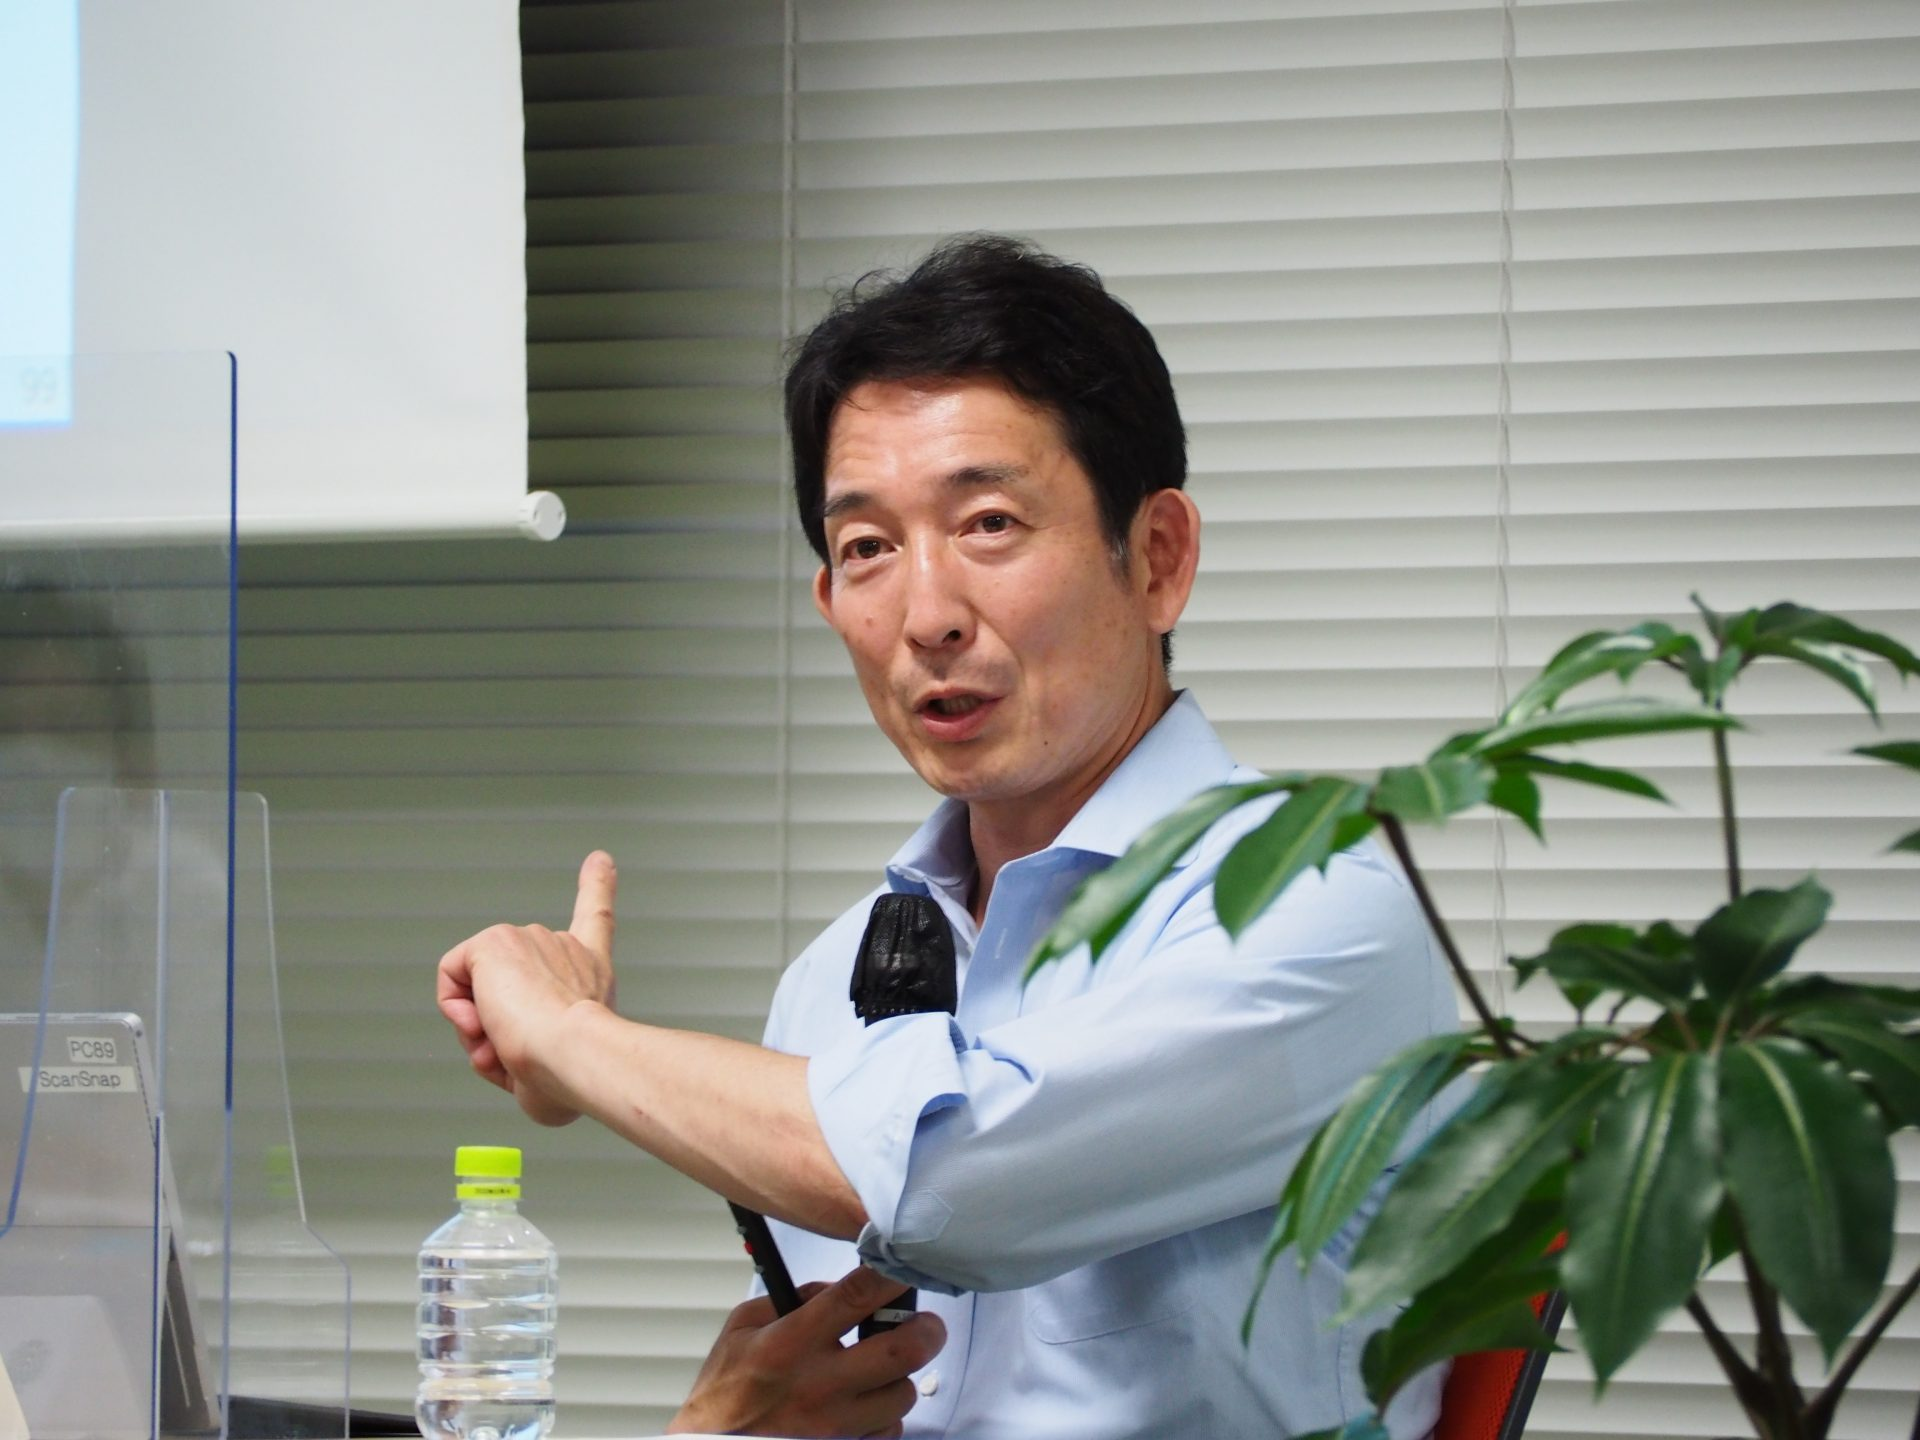 [Event Report] The 10th Semester of Health Policy Academy, Lecture 1 – Introduction (June 10, 2021)